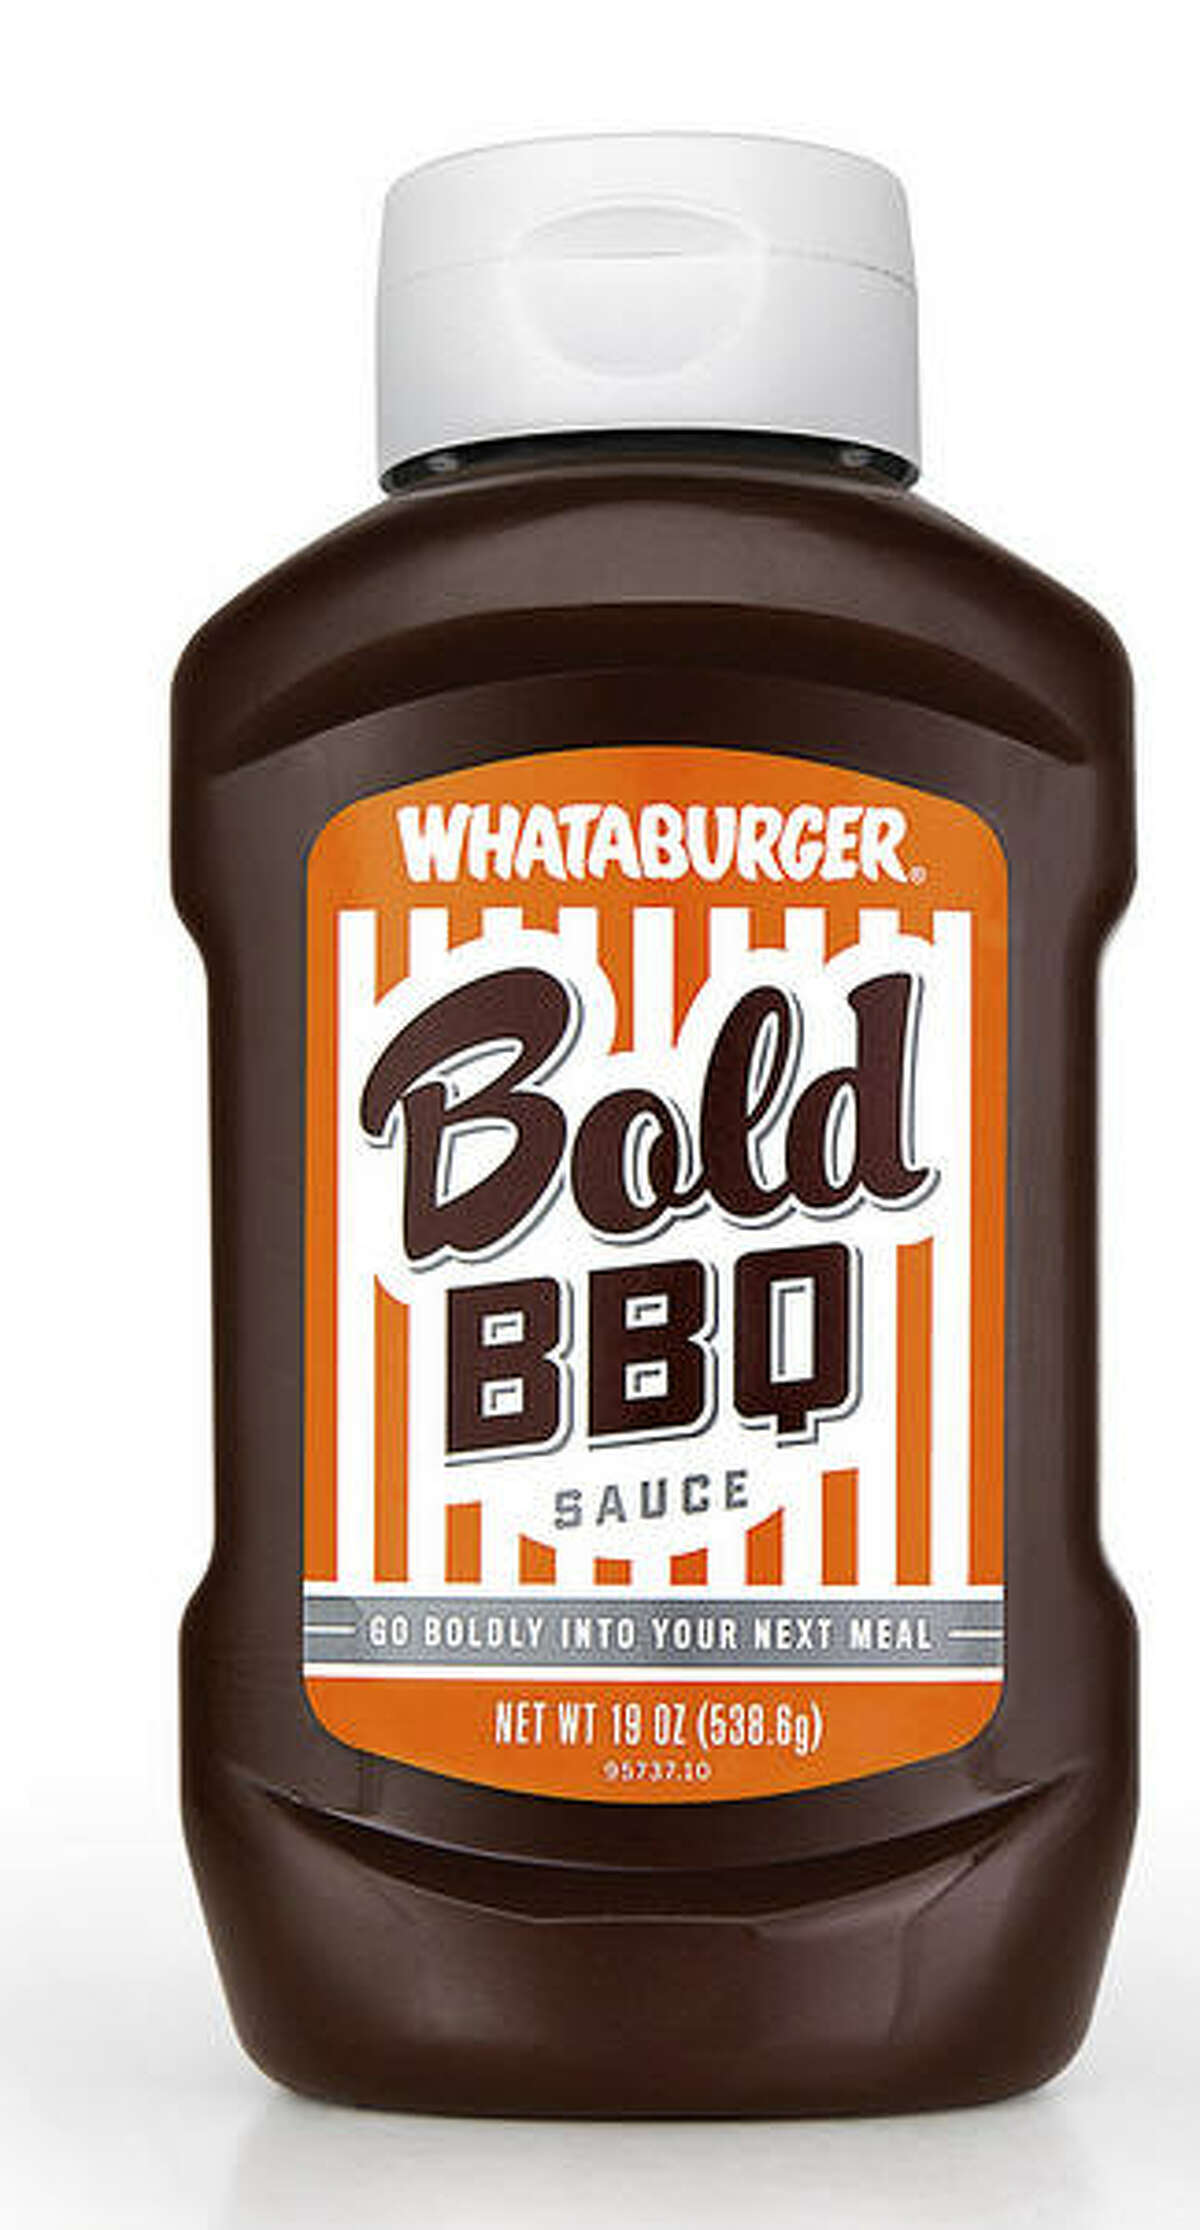 """Whataburger Bold BBQ Sauce Available in H-E-B stores statewide(added Feb. 9, 2015). Whataburger says:""""This is a Whataburger true original. For a flavor that's equal parts boldness, tanginess and awesomeness, look no further. Pour it on a sandwich, dip some chicken in it or use to baste when grilling. This Bold BBQ Sauce was used in Whataburger's BBQ Cheddar Burger."""""""